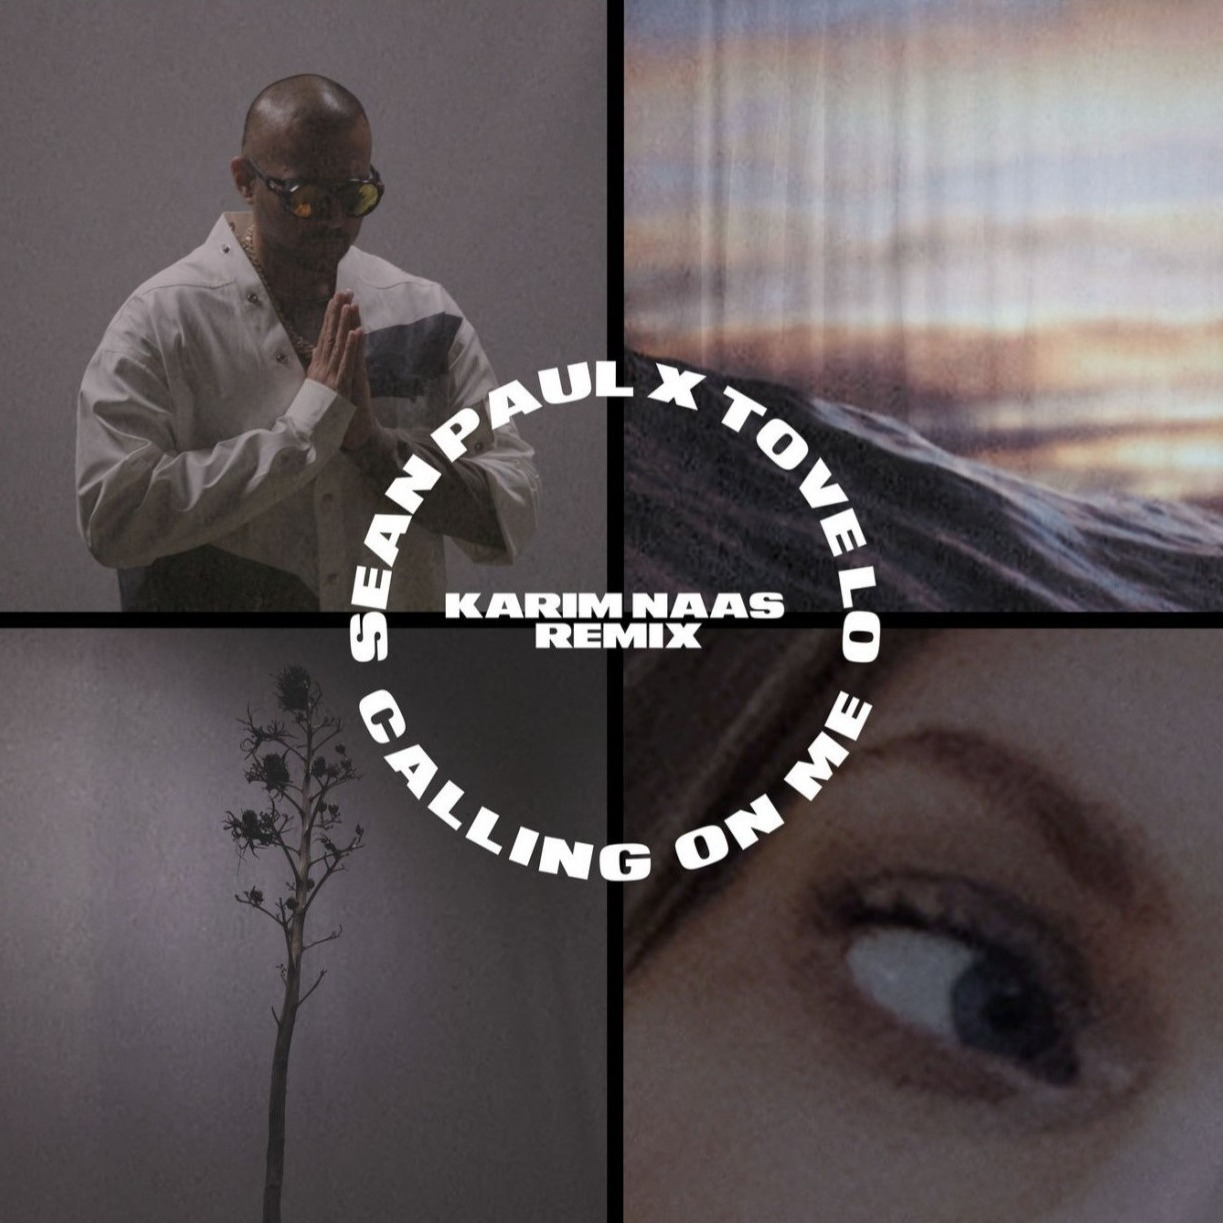 Karim Naas remixes Calling On Me by Sean Paul x Tove Lo